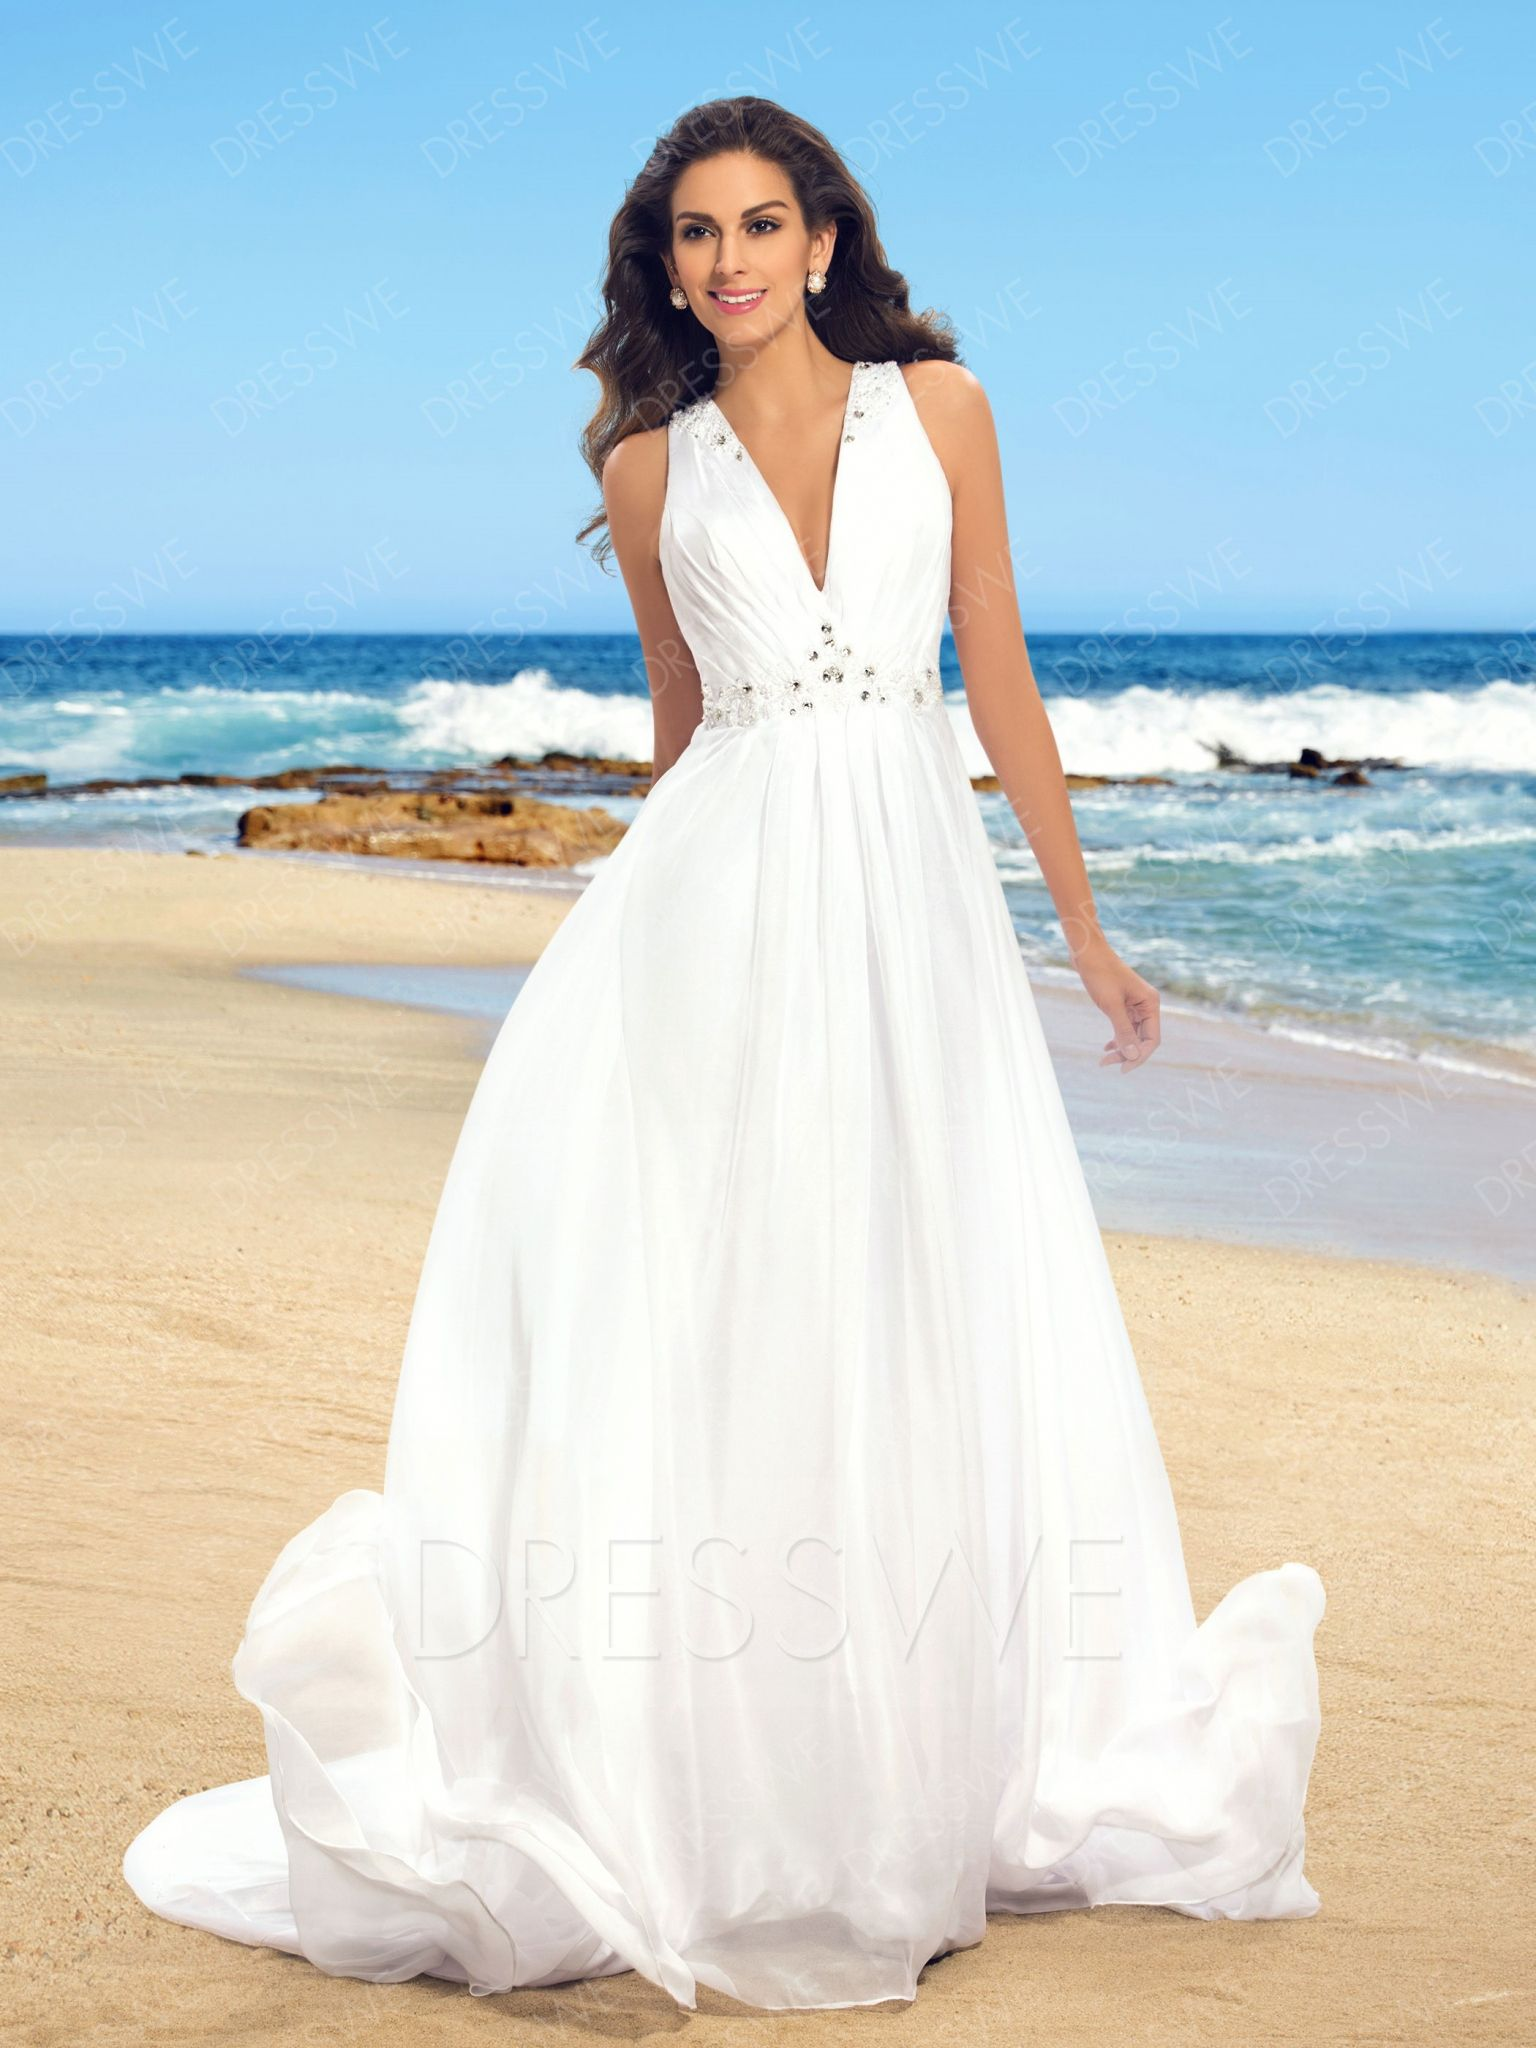 Beach wedding dress simple country dresses for weddings check more